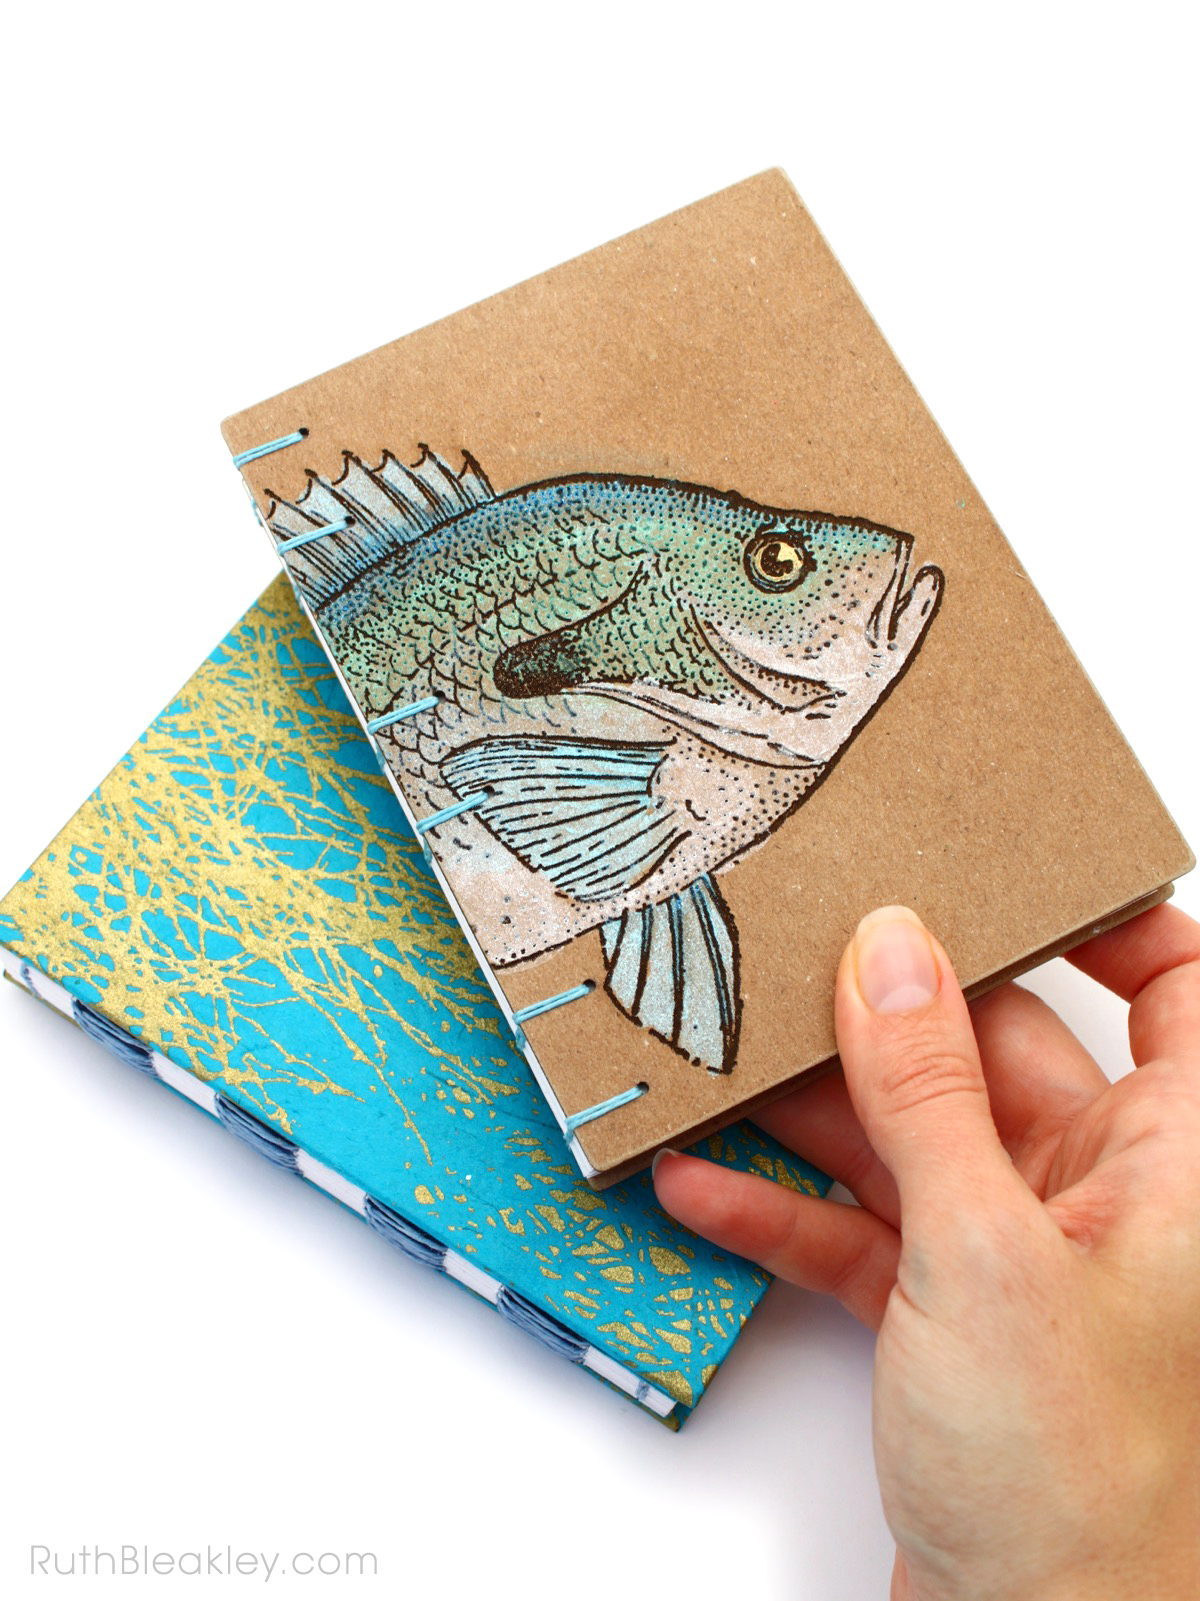 Handmade Journals make a great gift for the writers in your life